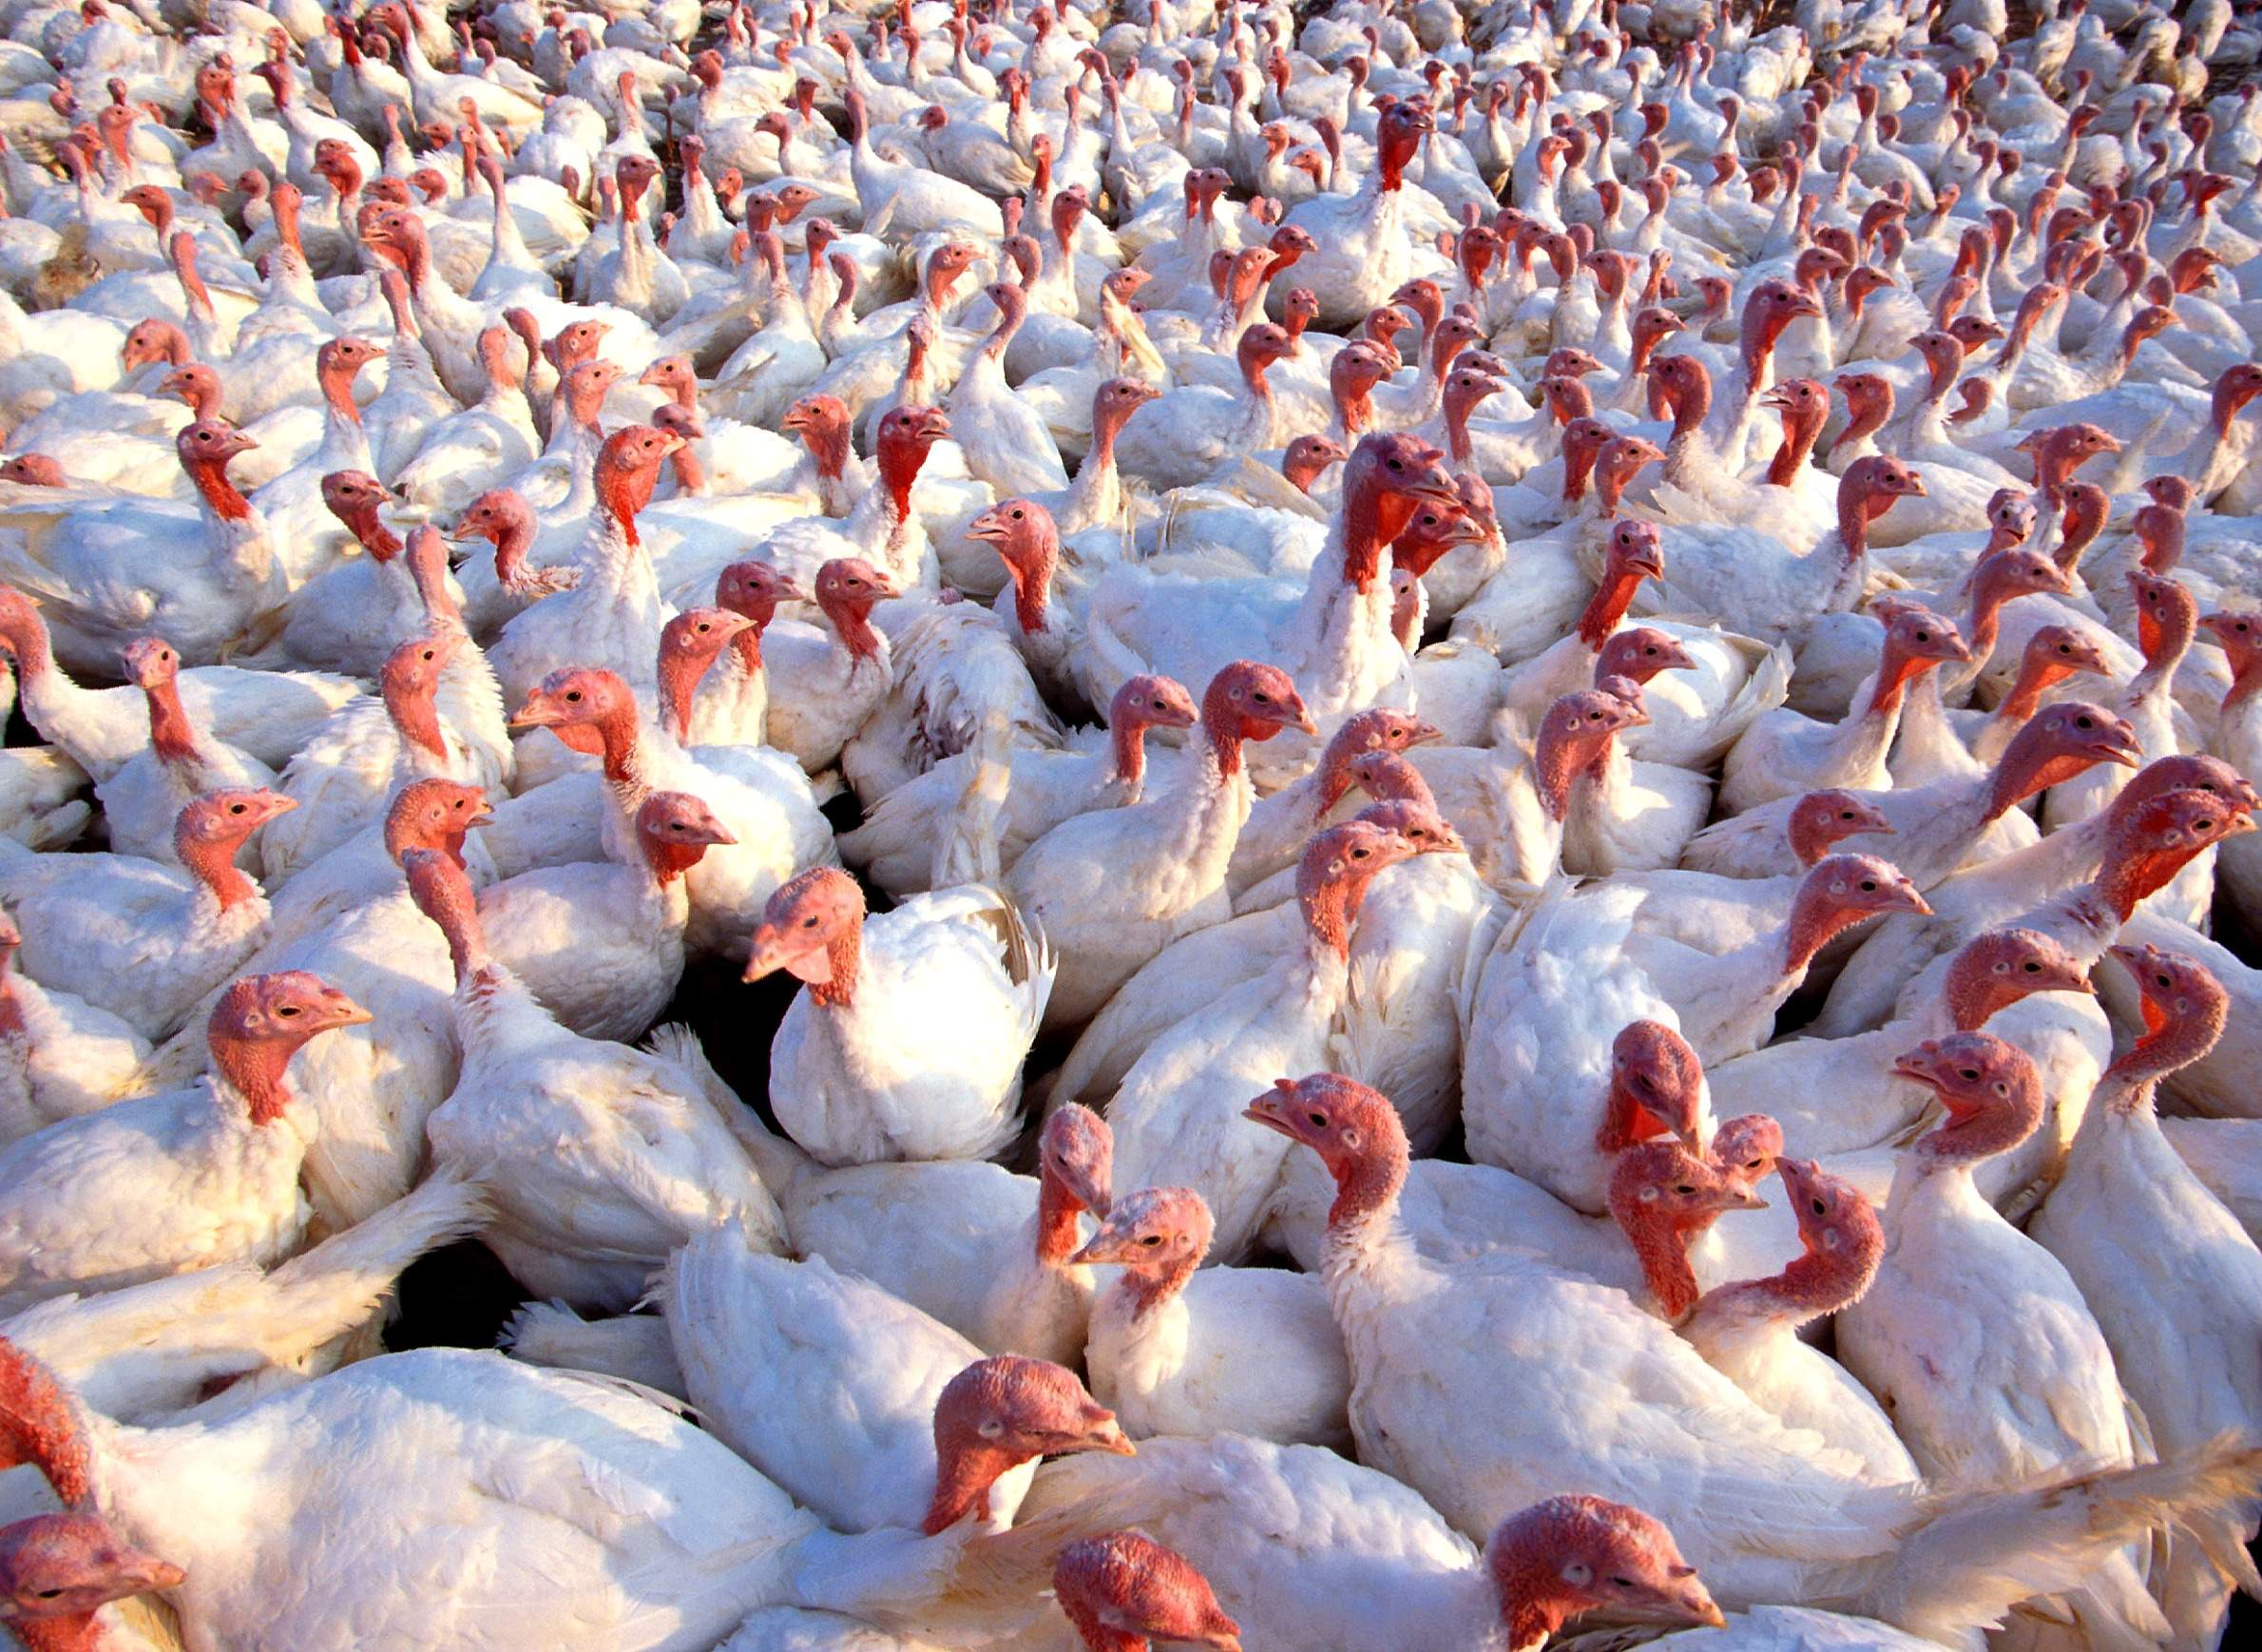 Third case of bird flu detected in Tennessee